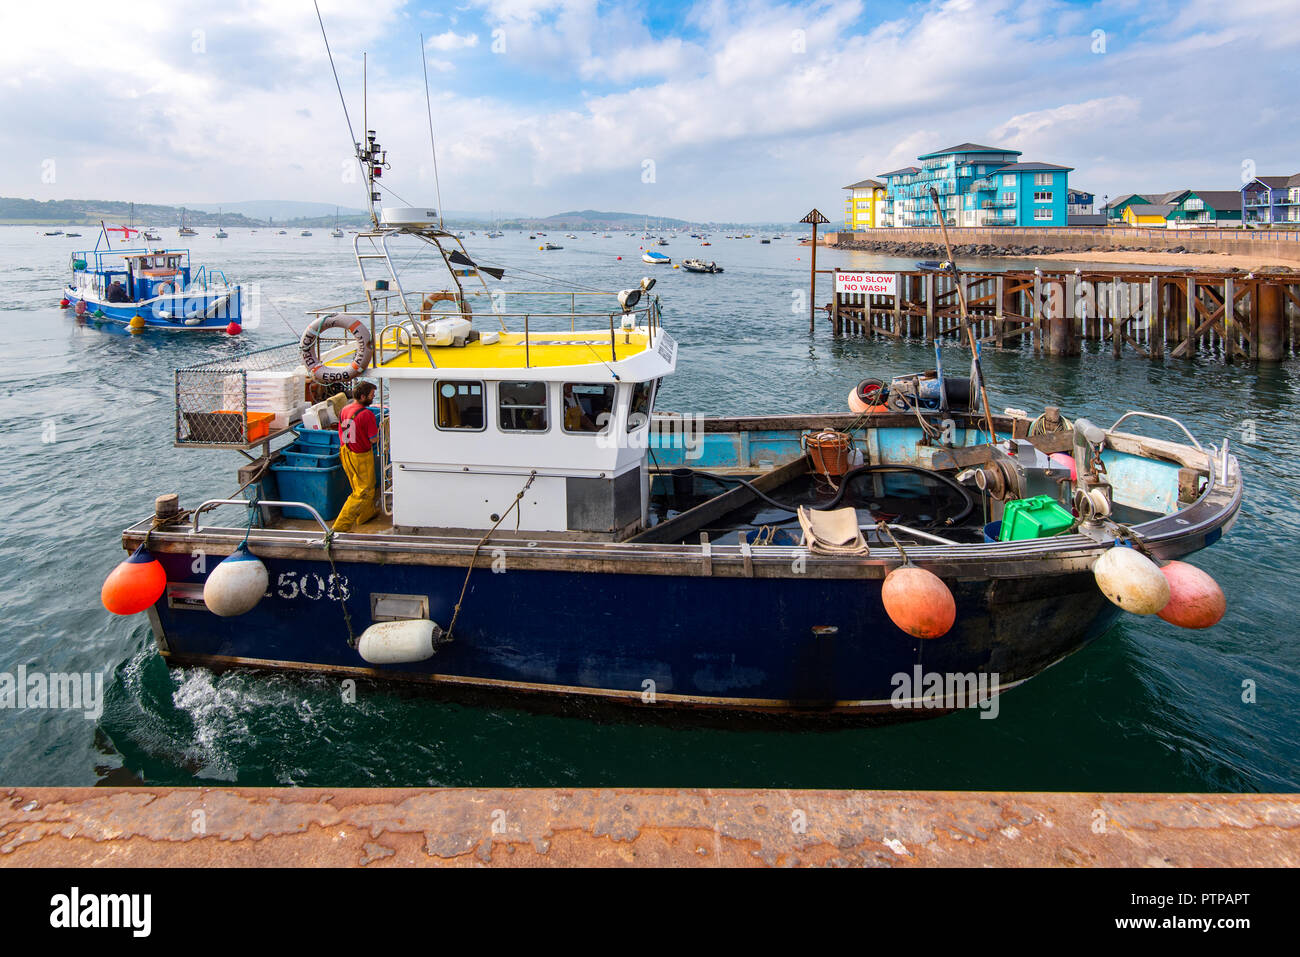 EXMOUTH, DEVON, UK - 05OCT2018:  Becci of Ladram is a purpose built inshore fishing boat operating out of Exmouth. - Stock Image